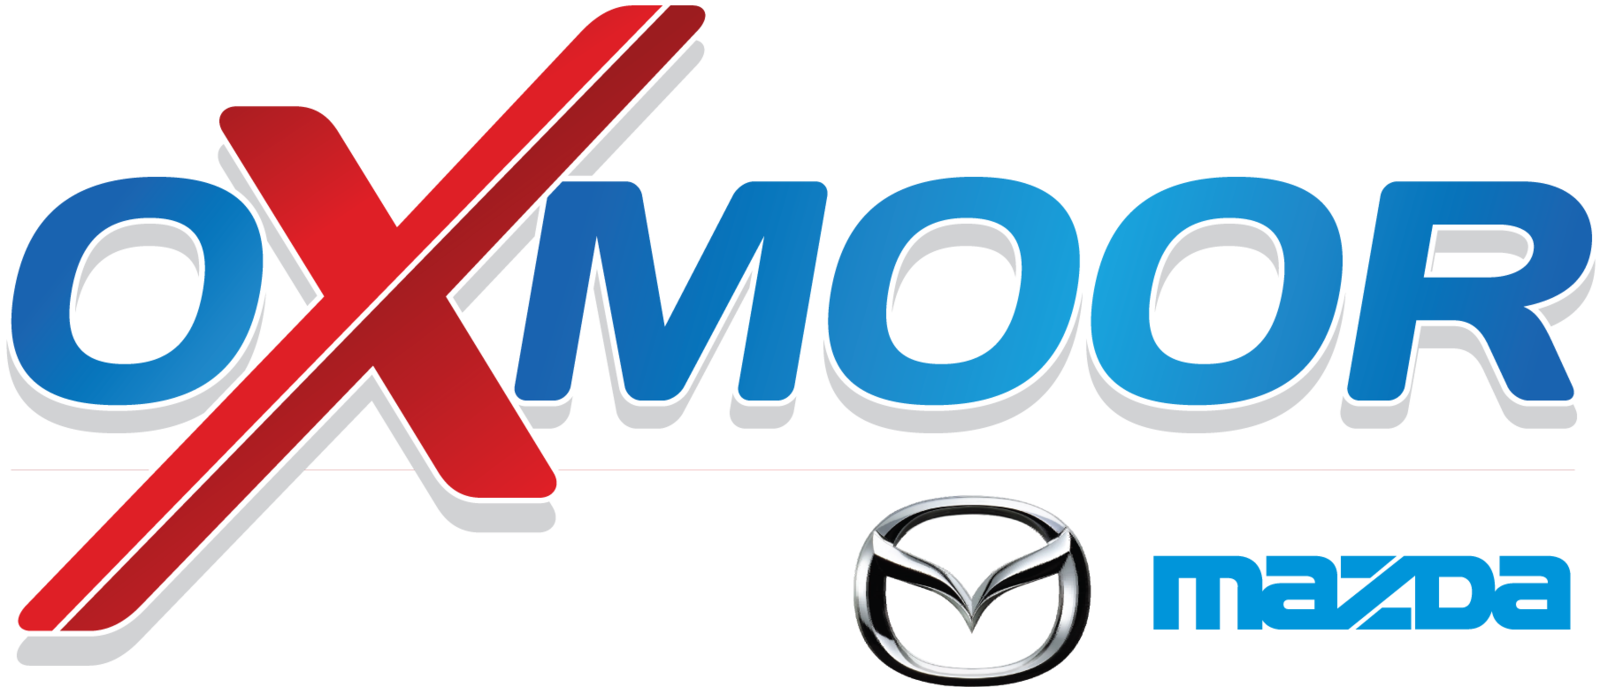 Oxmoor Toyota Service >> Oxmoor Mazda - Louisville, KY: Read Consumer reviews, Browse Used and New Cars for Sale